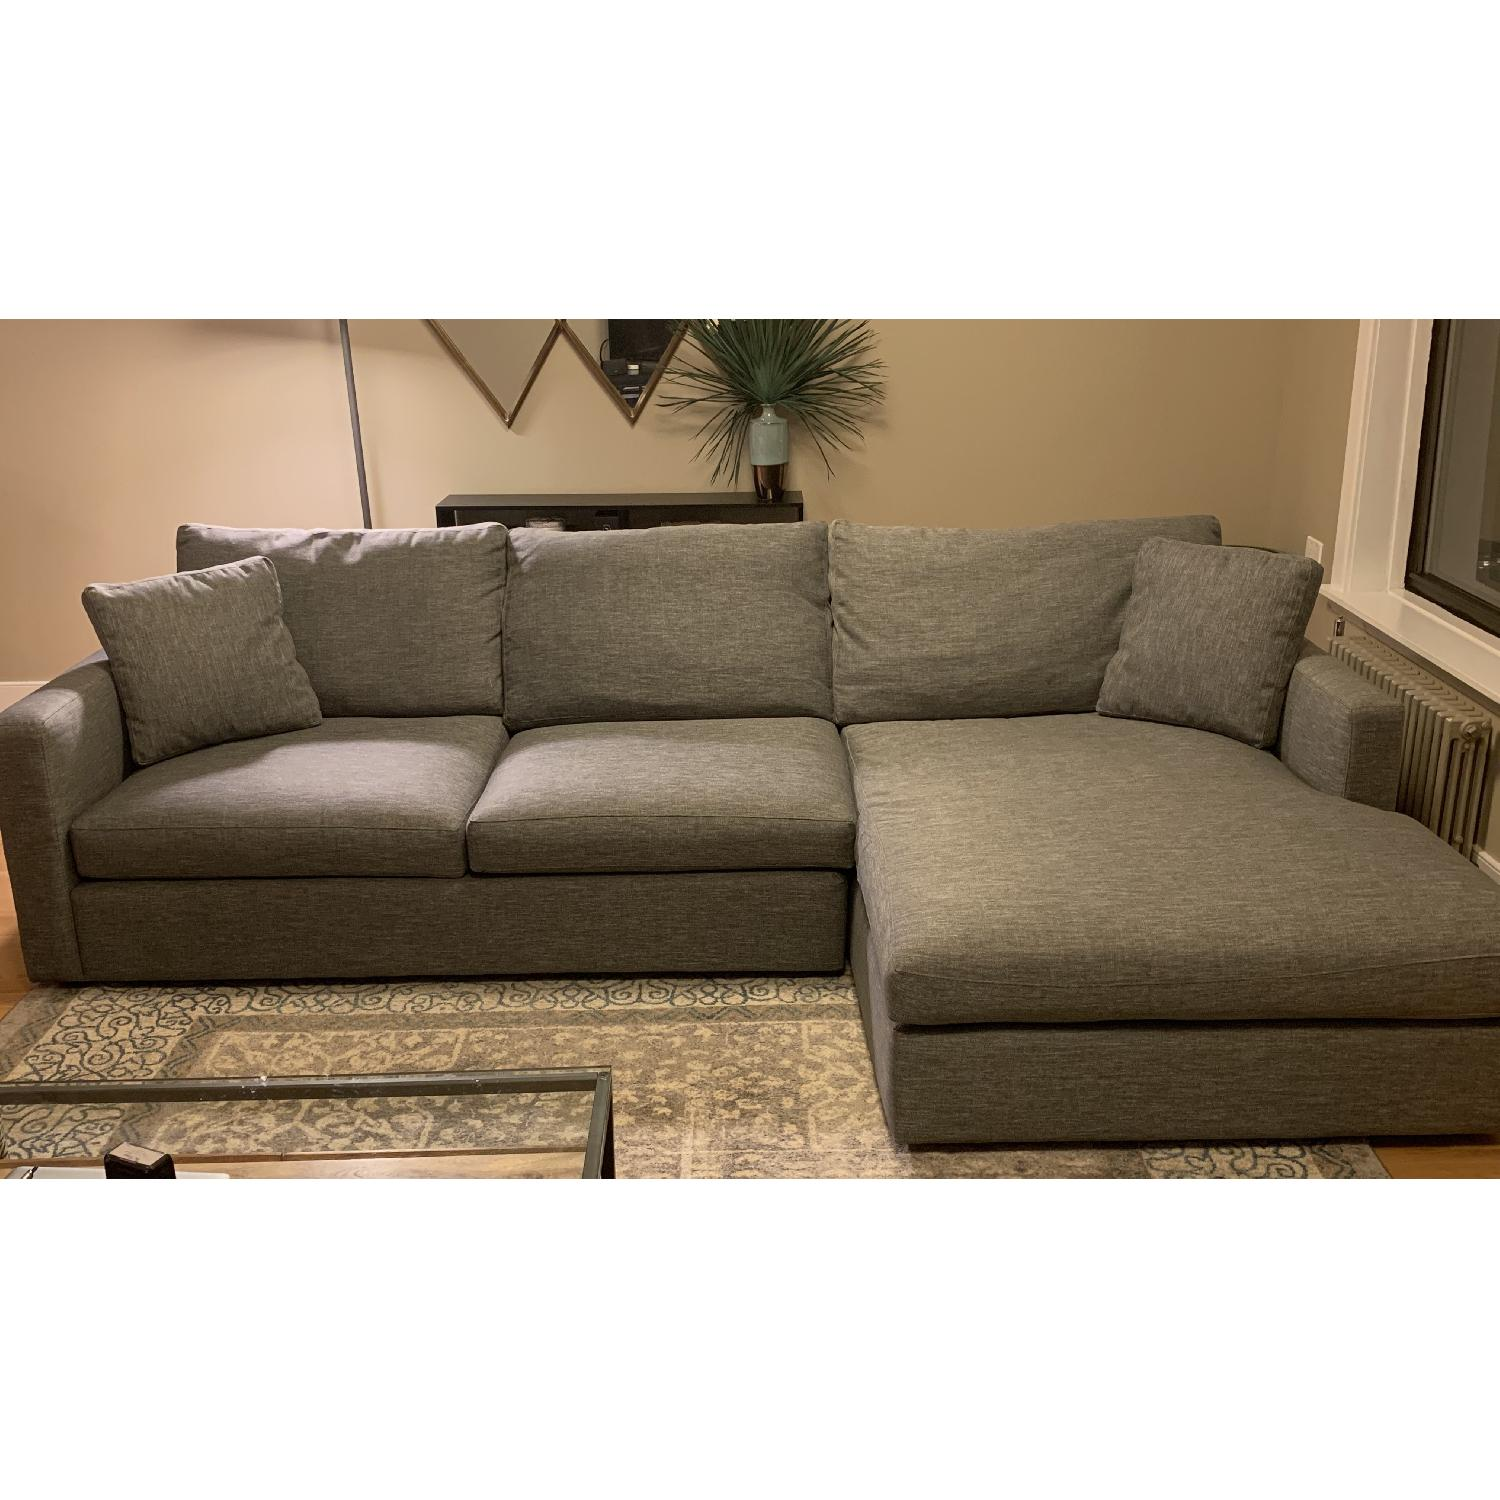 Lillian August Chris Oversized Sectional Sofa